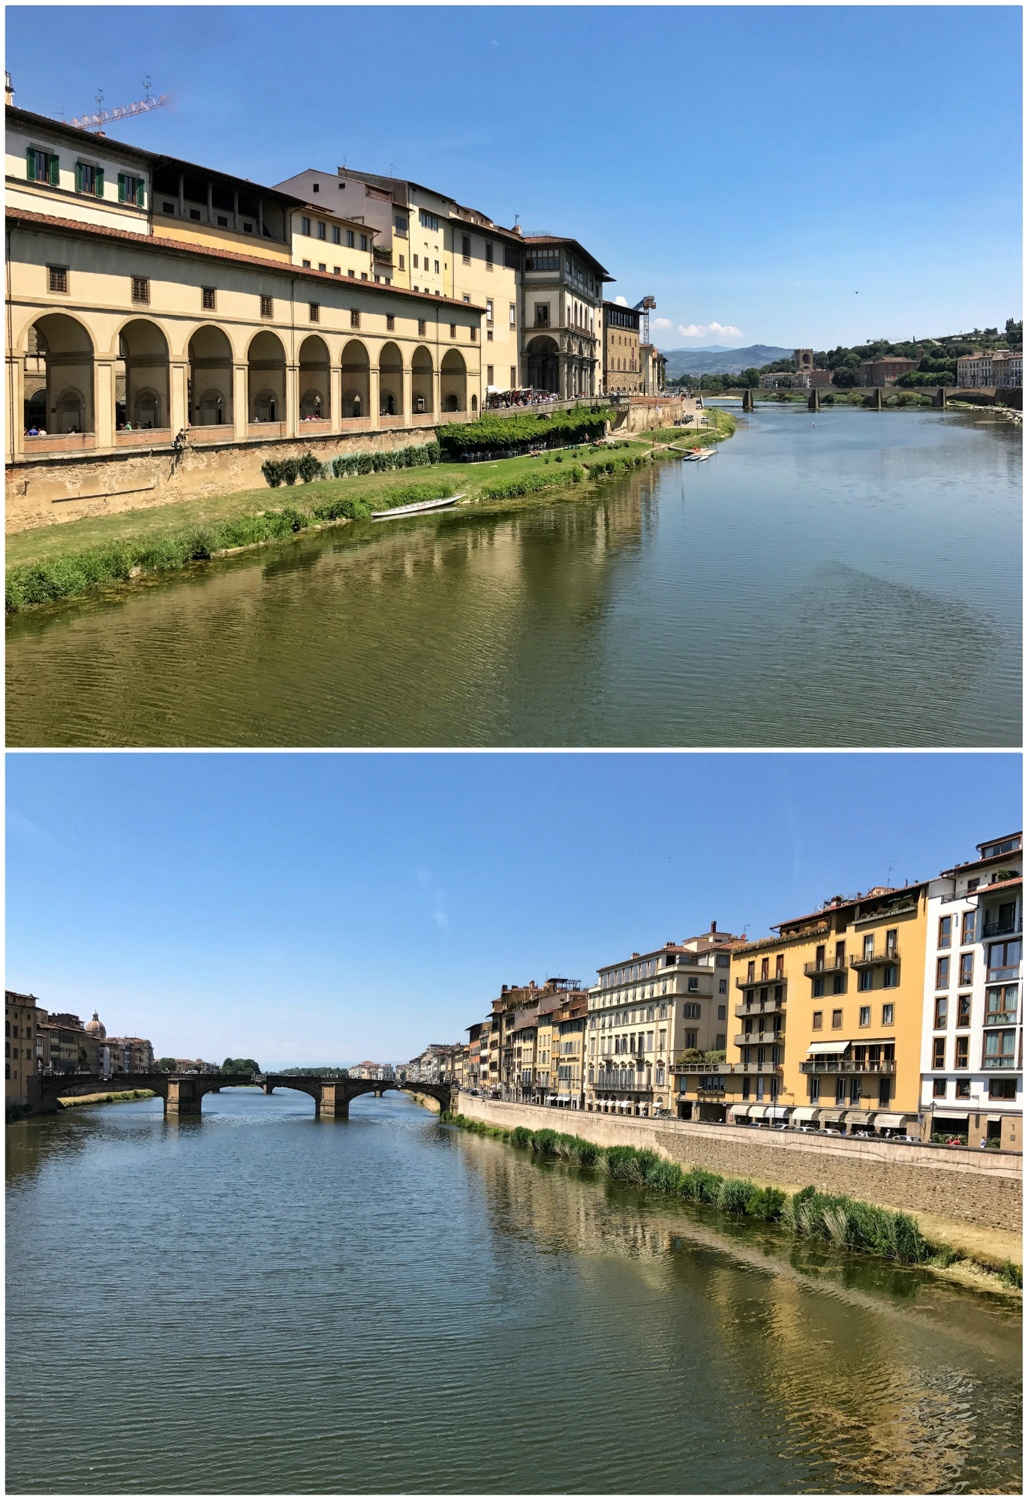 Best things to see in Florence - Ponte Vecchio in Florence, Italy Photo Heatheronhertravels.com